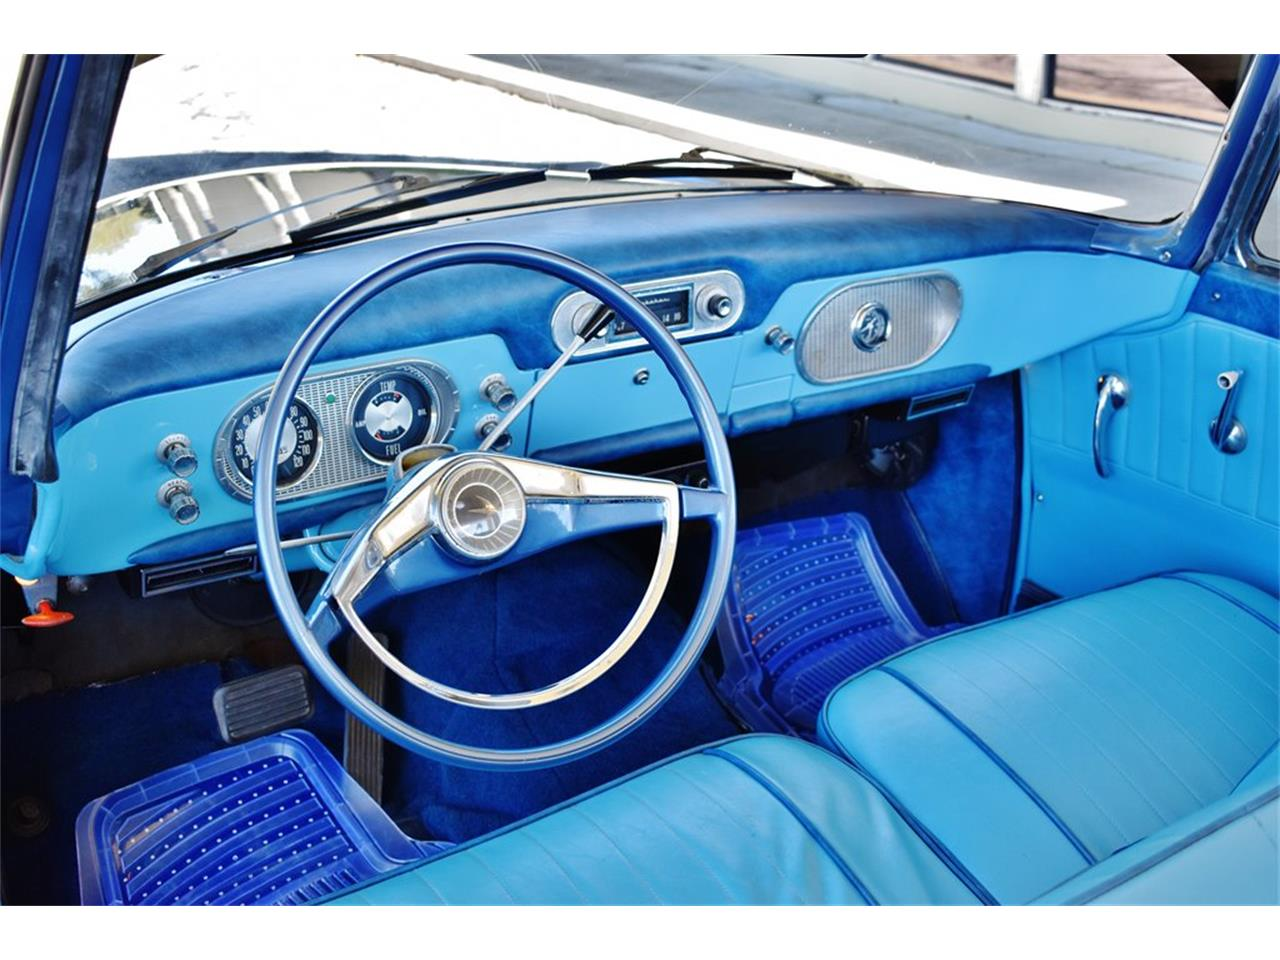 1960 Studebaker Lark for sale in Lakeland, FL – photo 30